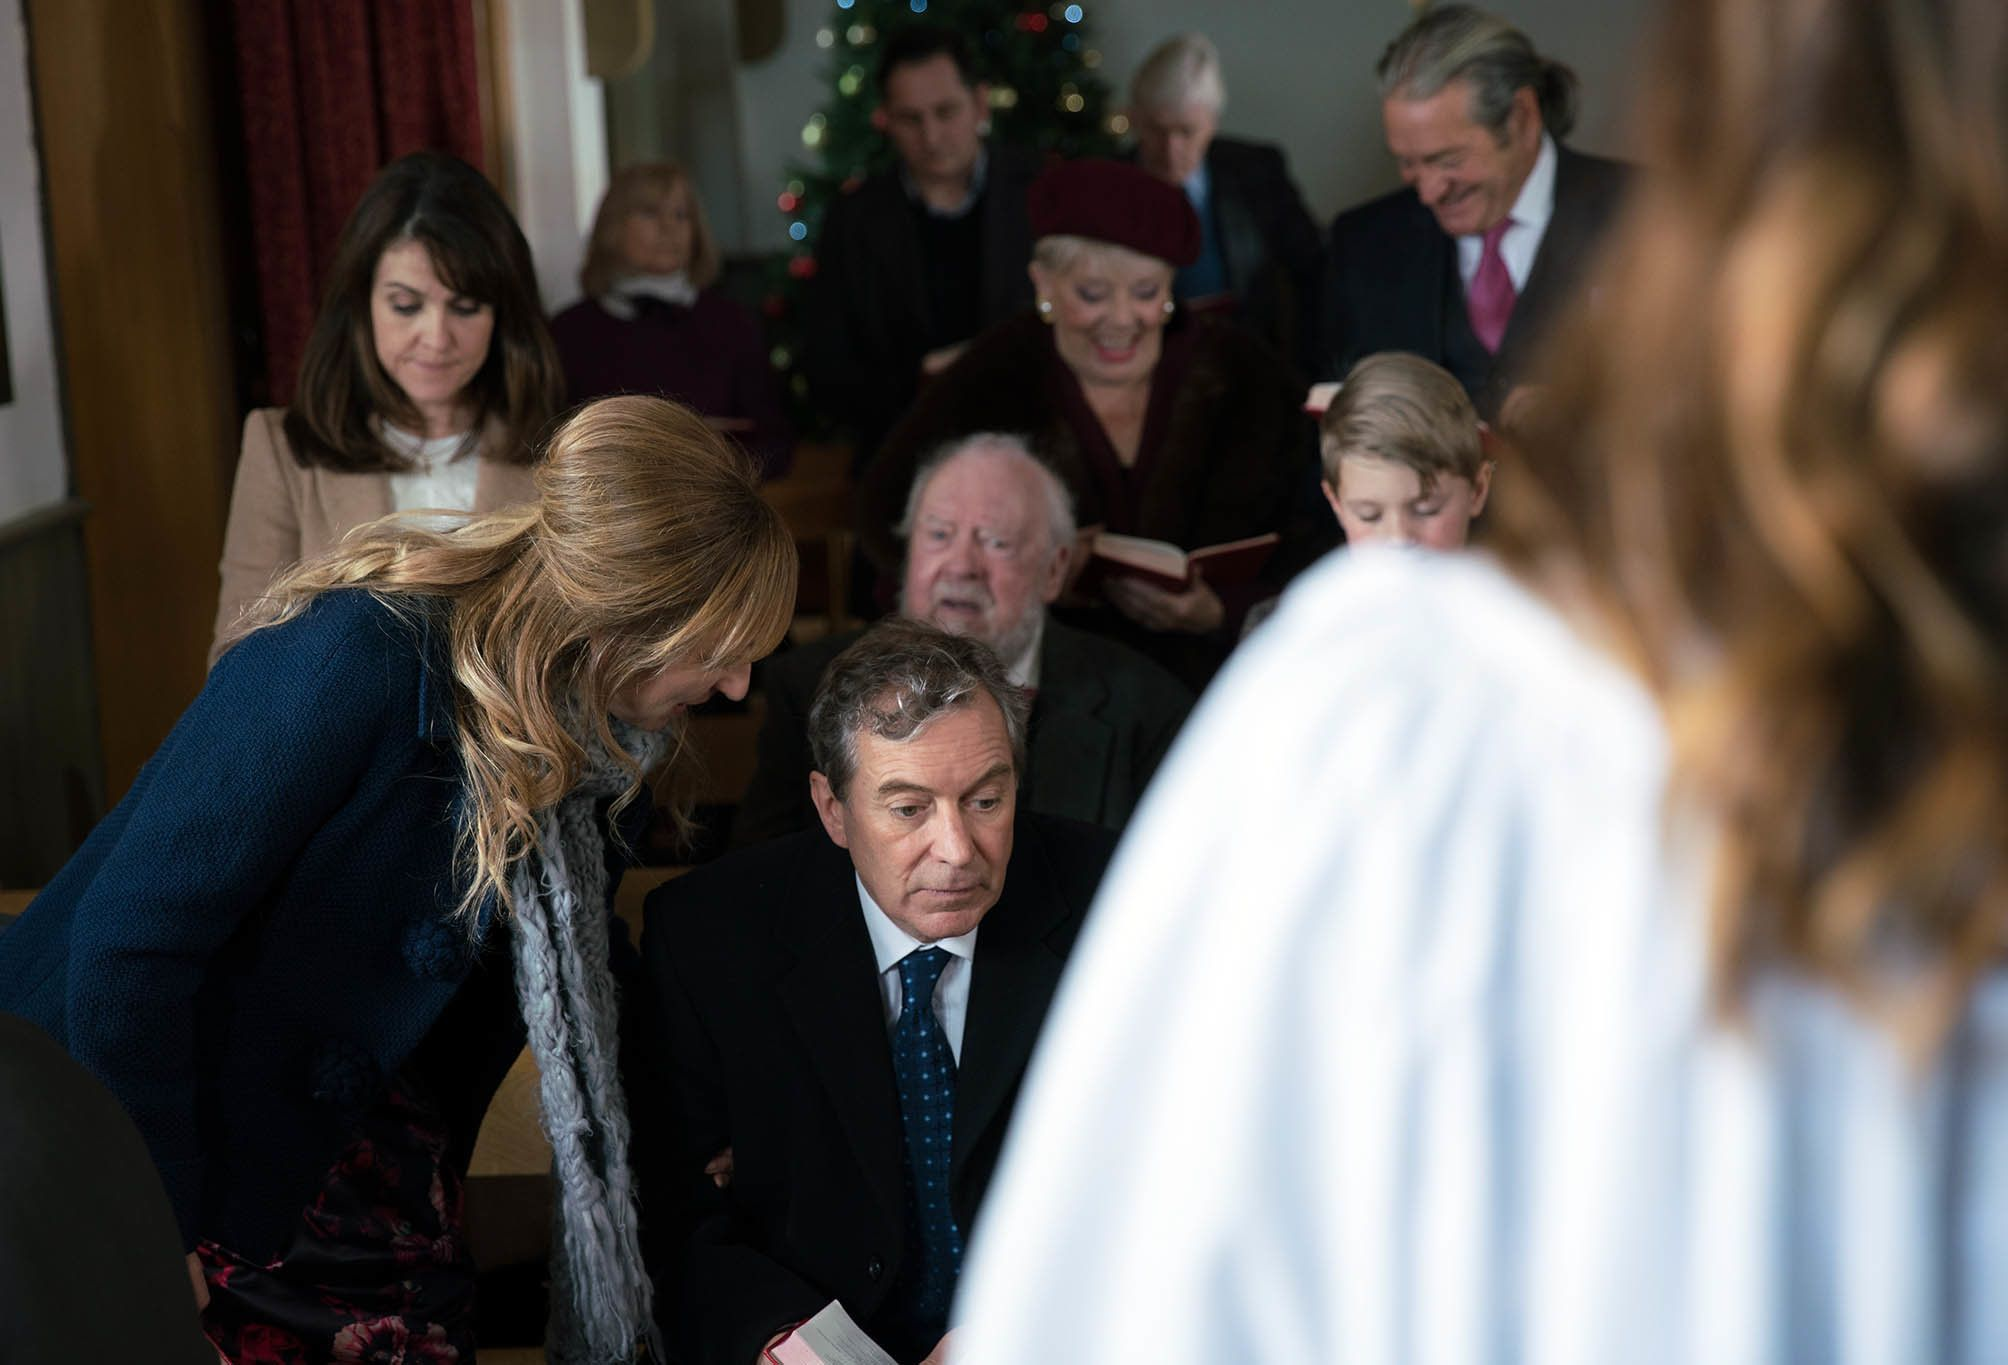 Emmerdale's Ashley Is Going To Have A Heartbreaking Start To Christmas